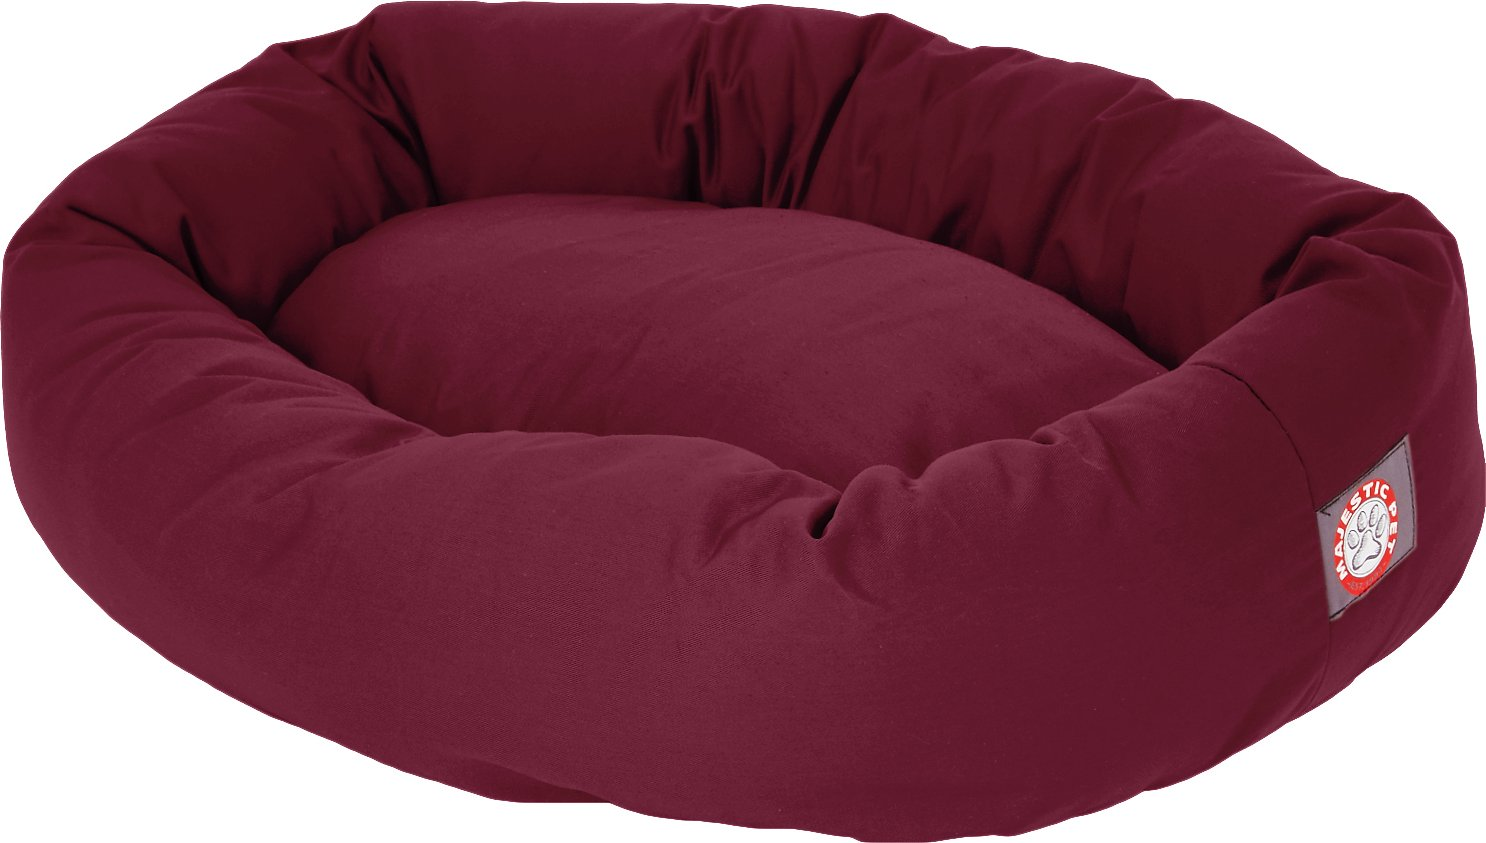 majestic pet bagel dog bed 52 inch burgundy chewy com